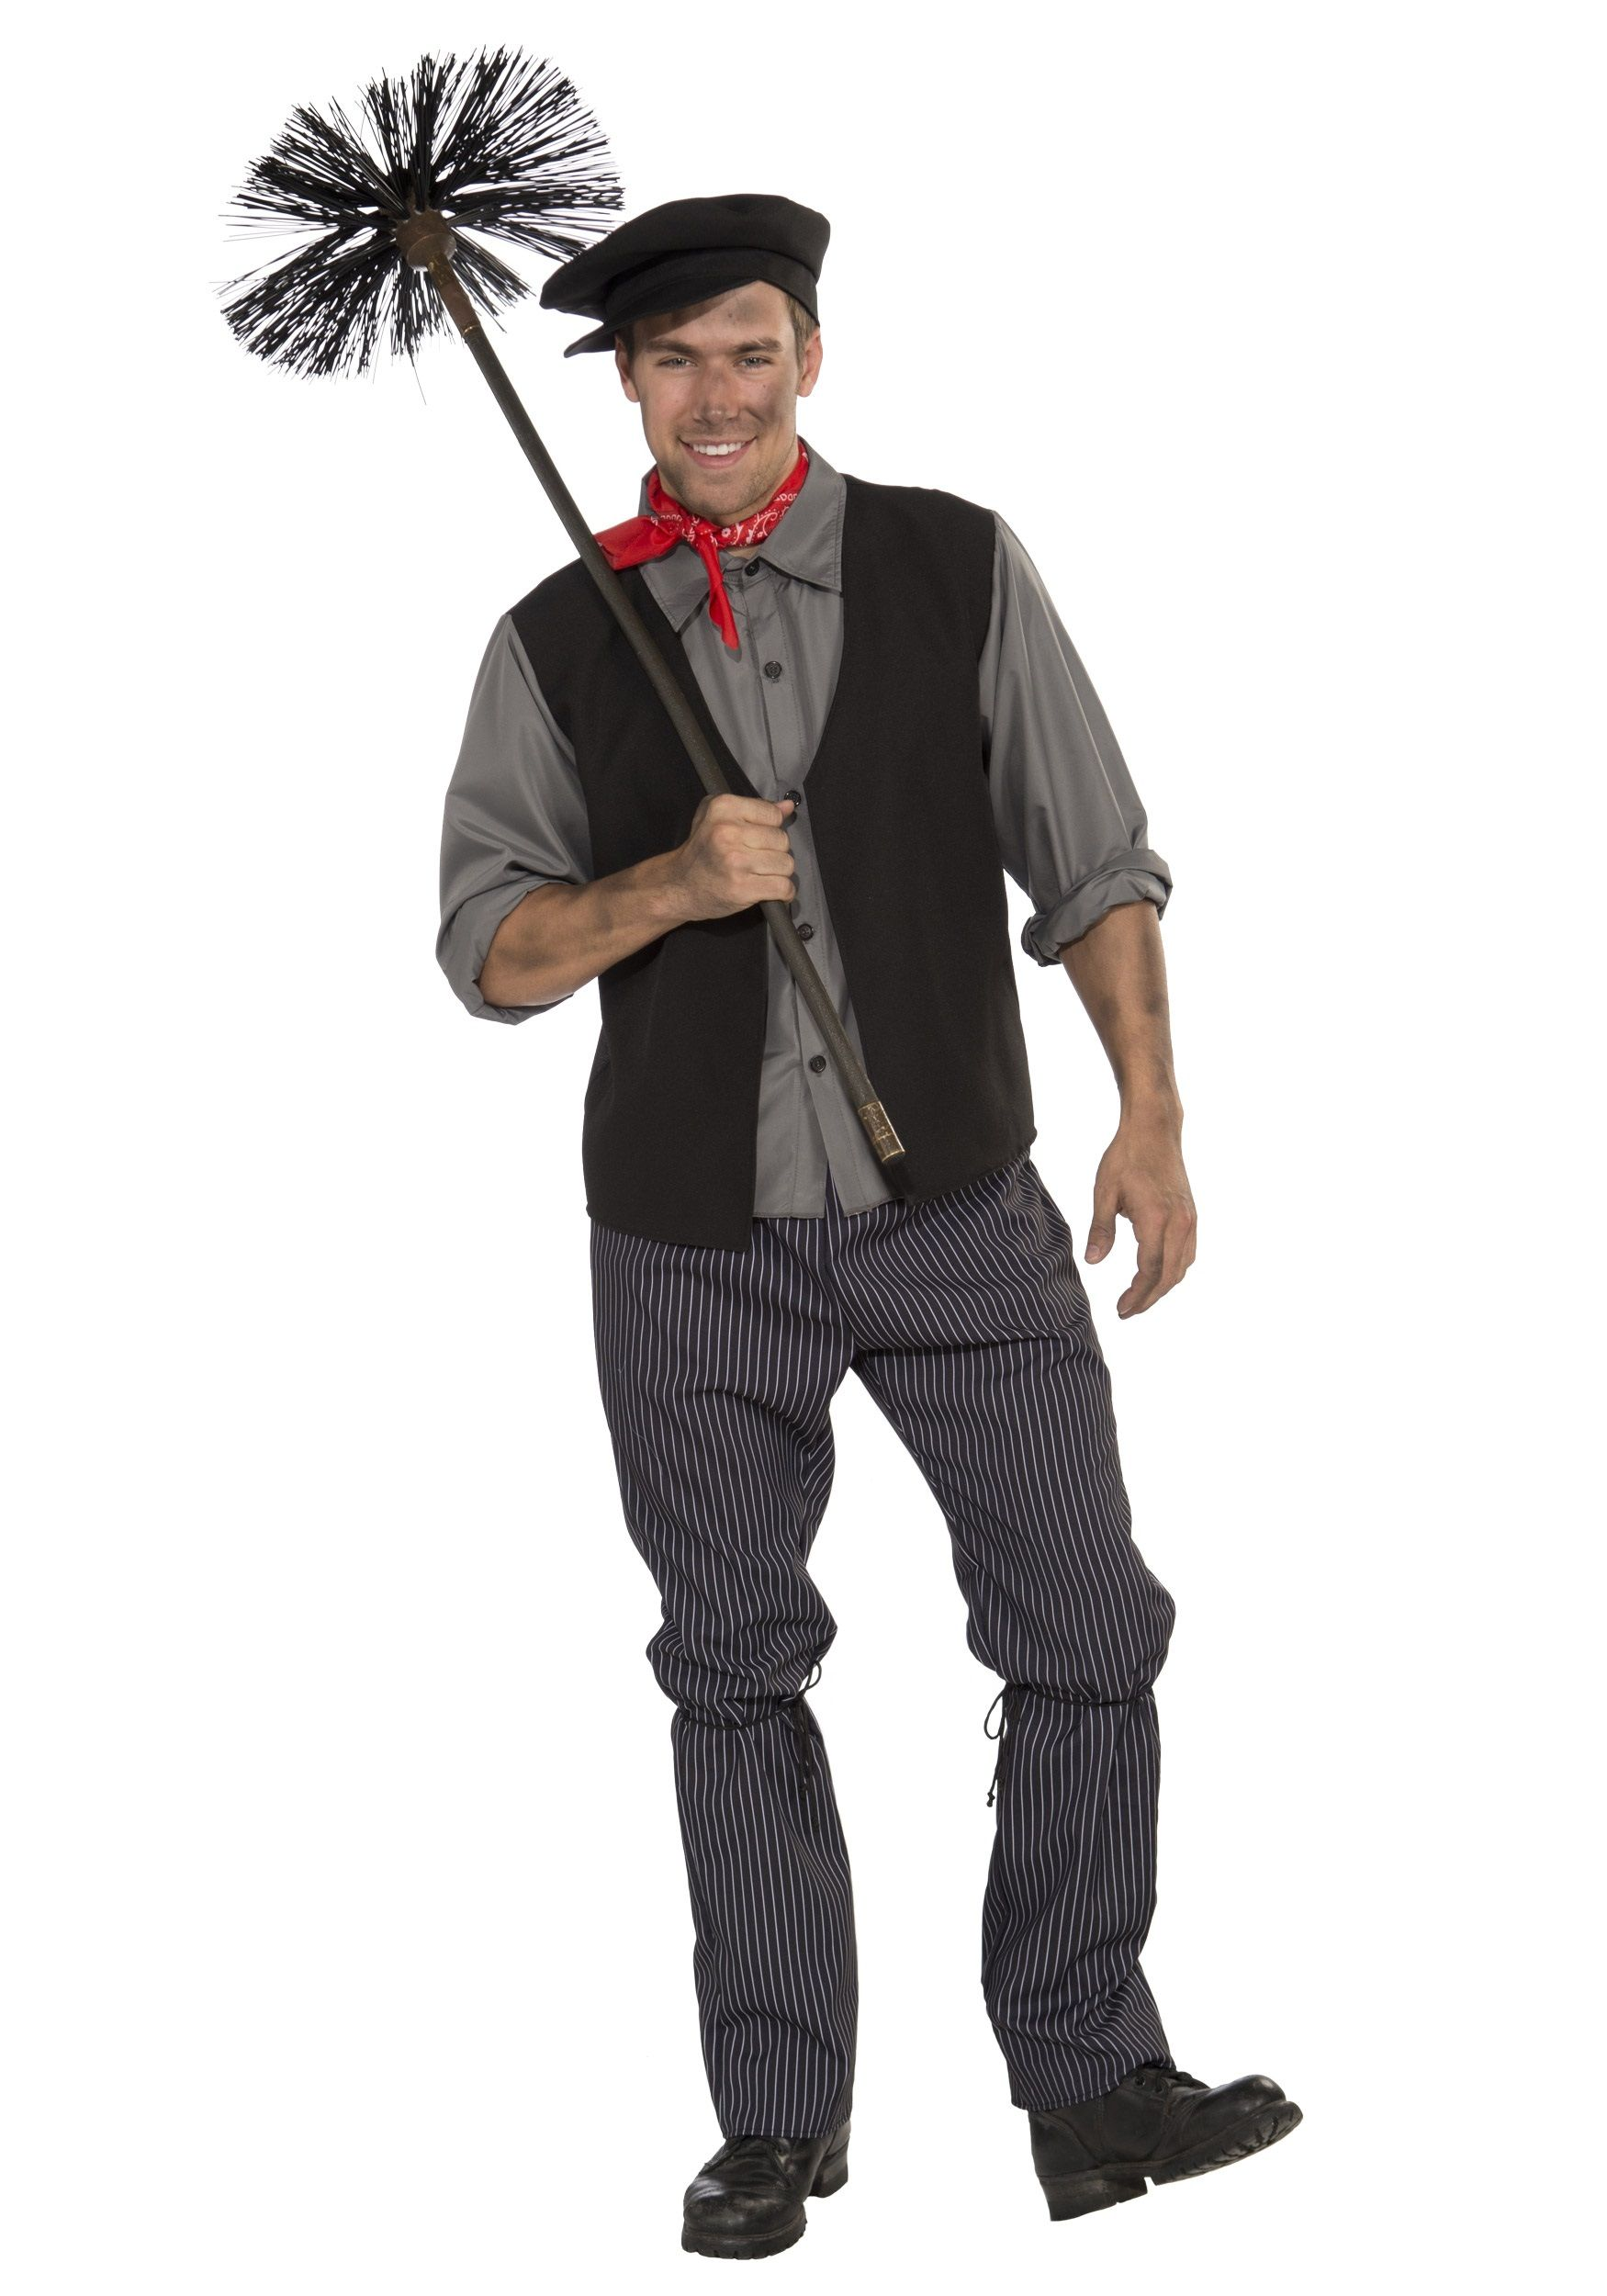 Chimney Cleaners Piru  1000+ images about pictures of chimney sweeps on Pinterest  Chimney sweep, Chimney sweep costume and Pipe cleaners